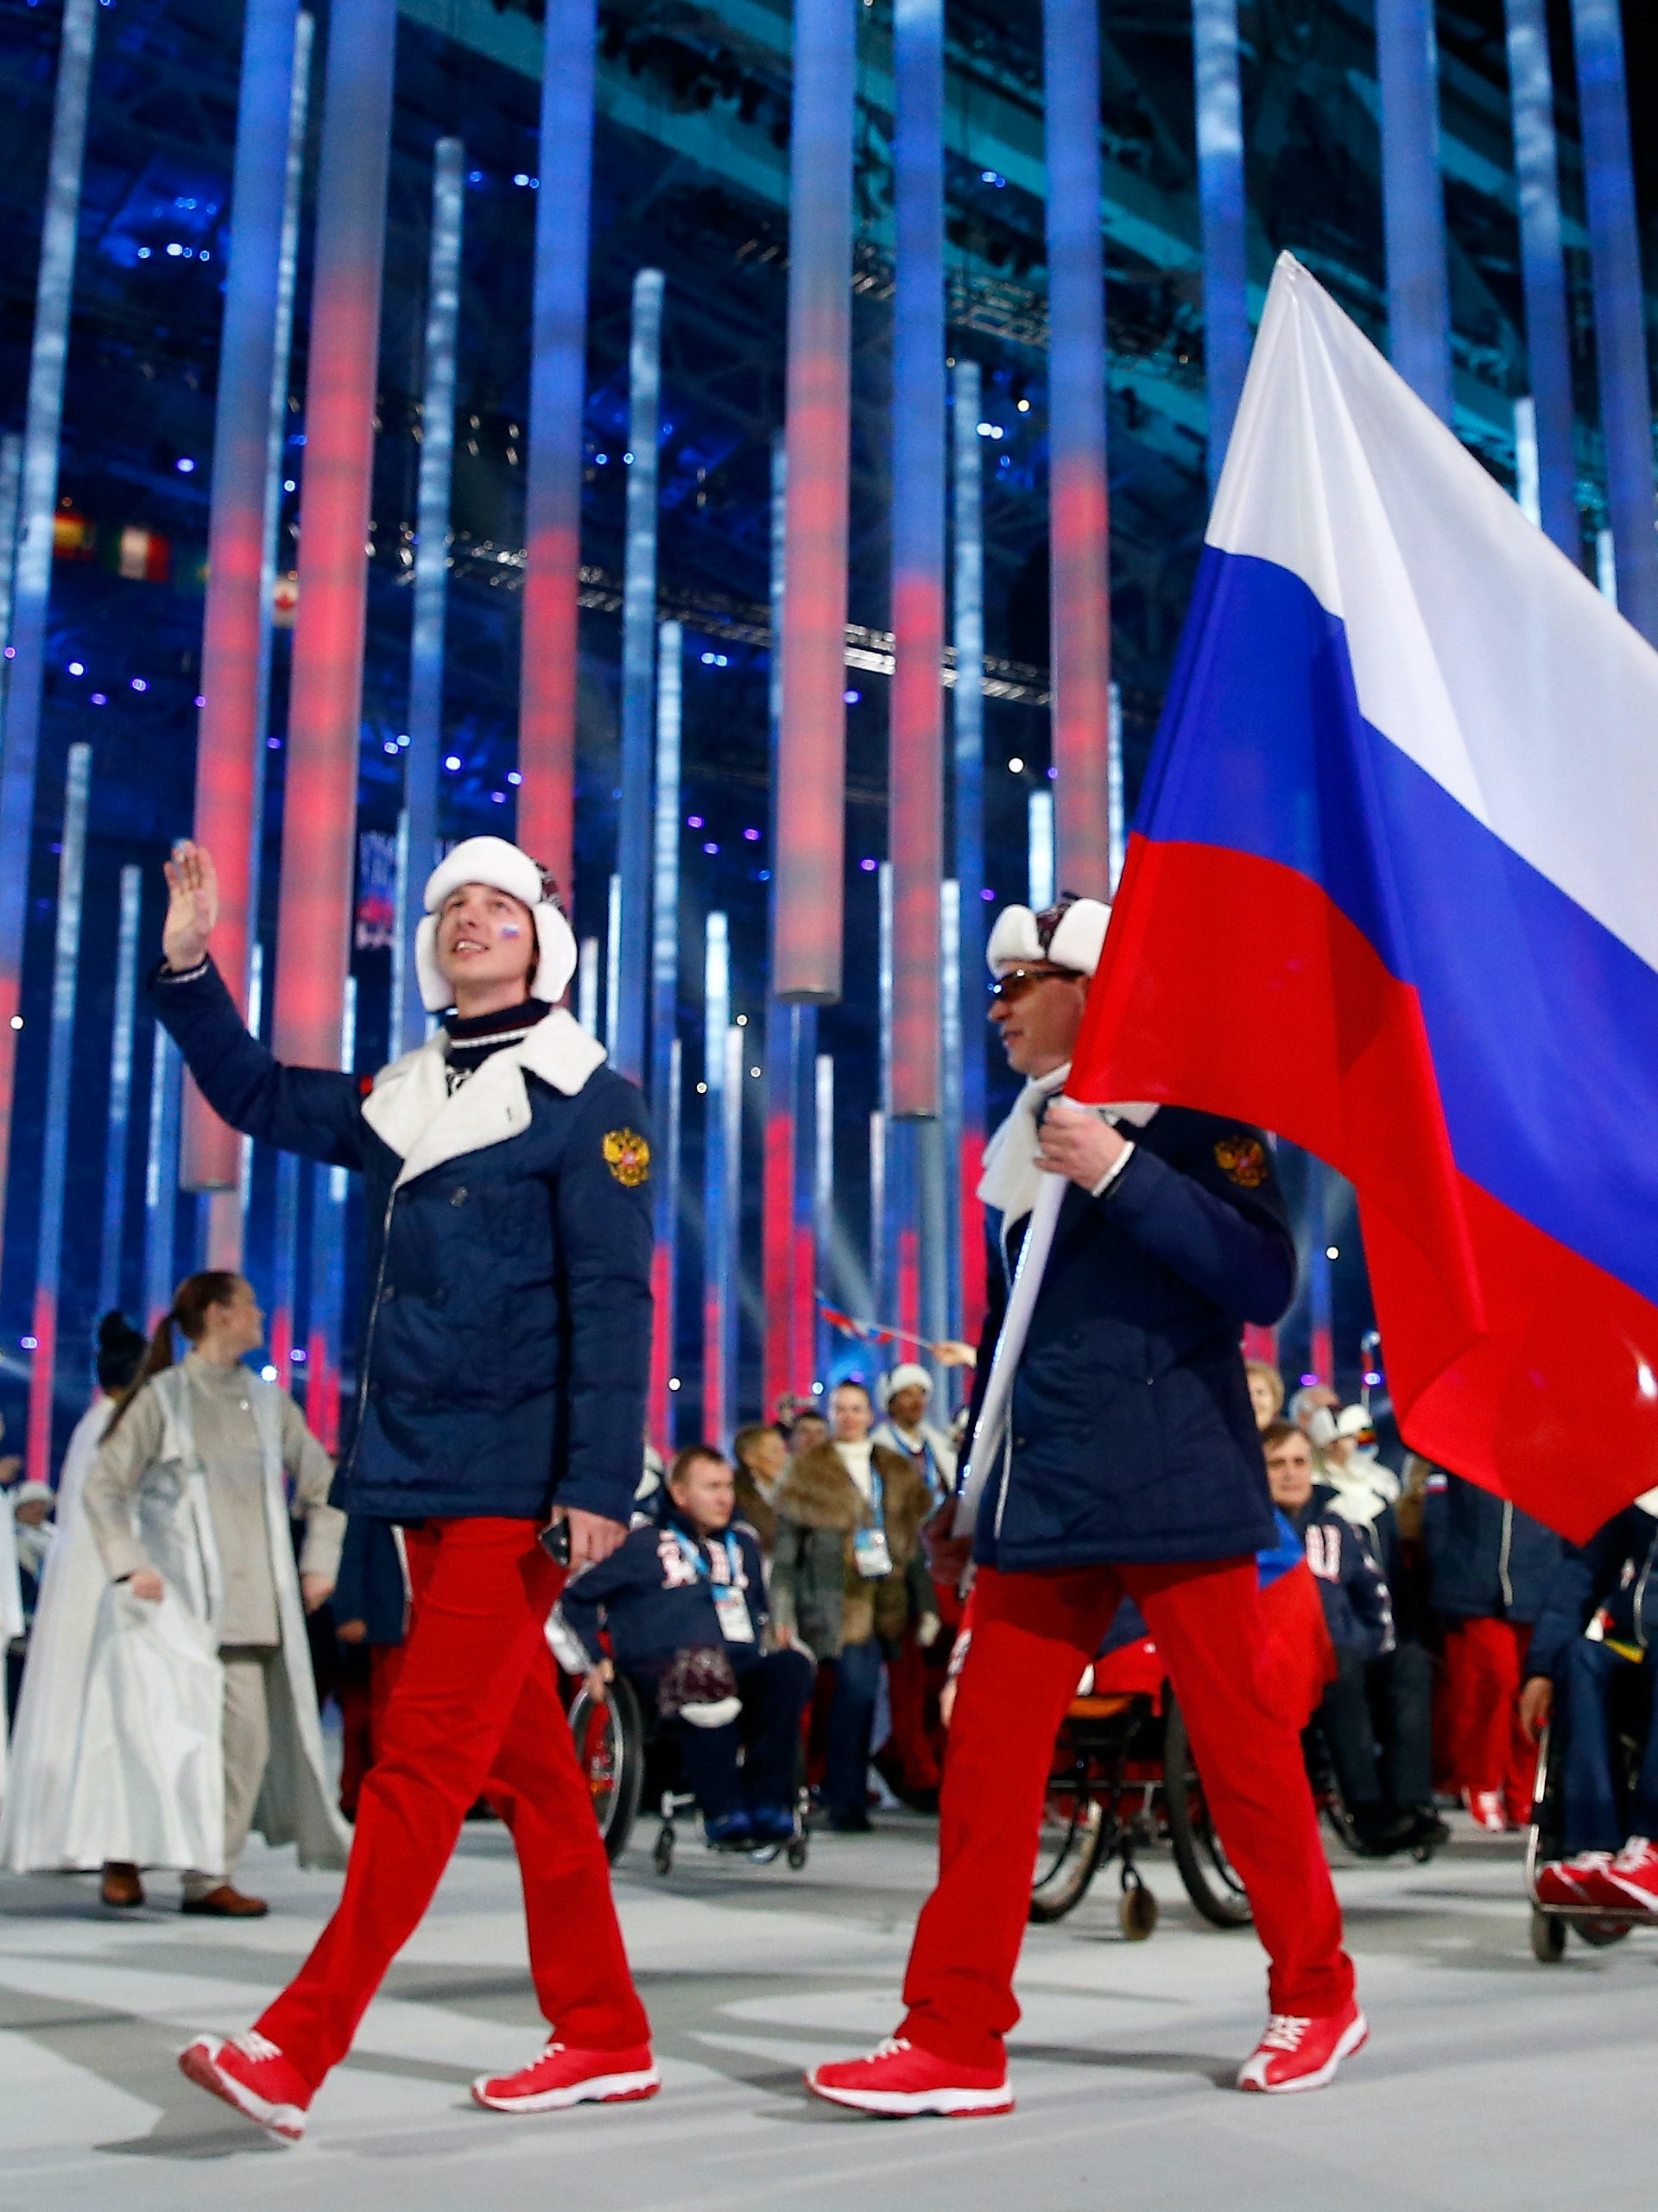 SOCHI, RUSSIA - MARCH 07:  The Russian Federation team enter the stadium during the Opening Ceremony of the Sochi 2014 Paralympic Winter Games at Fisht Olympic Stadium on March 7, 2014 in Sochi, Russia.  (Photo by Tom Pennington/Getty Images)